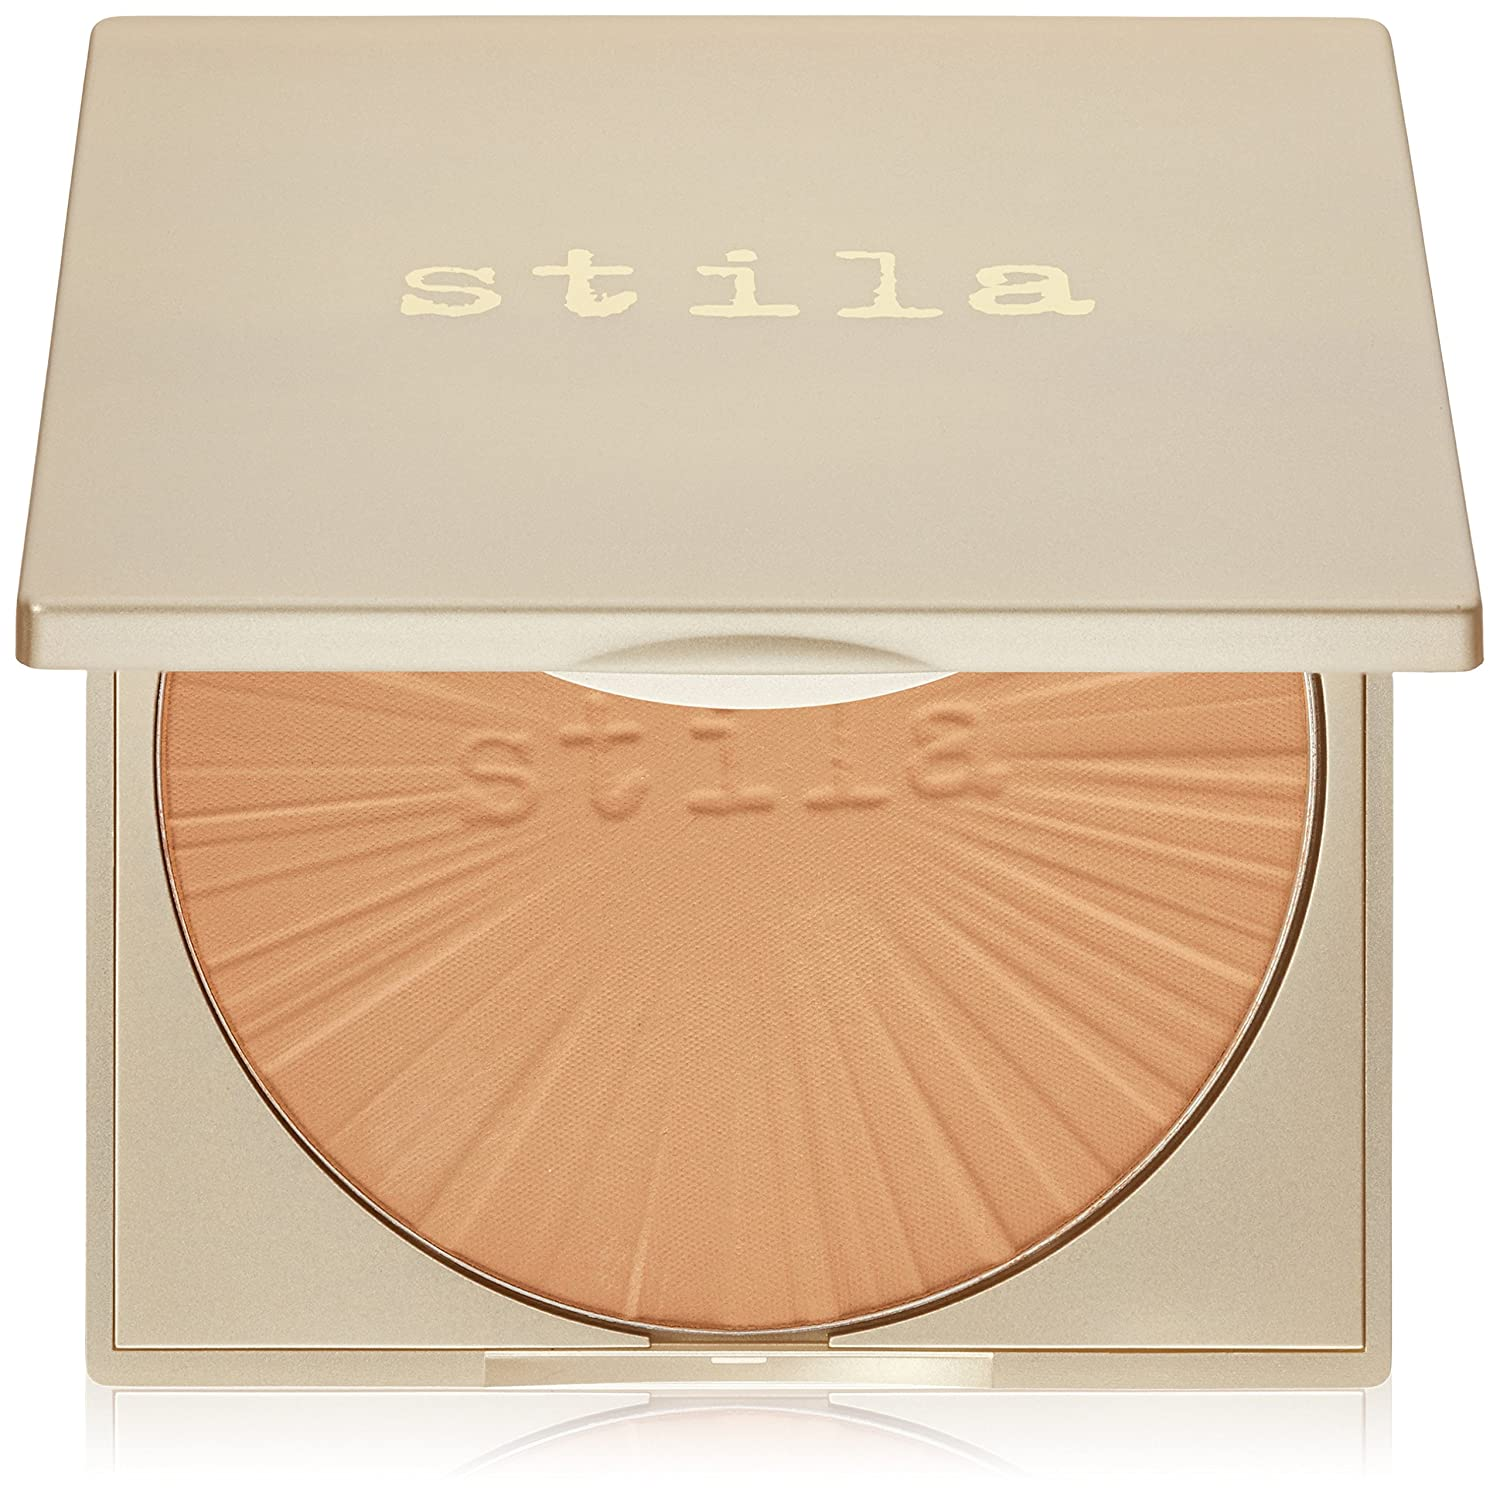 Stila Stay All Day Bronzer for Face and Body 15 g Light 15 g SB58010001